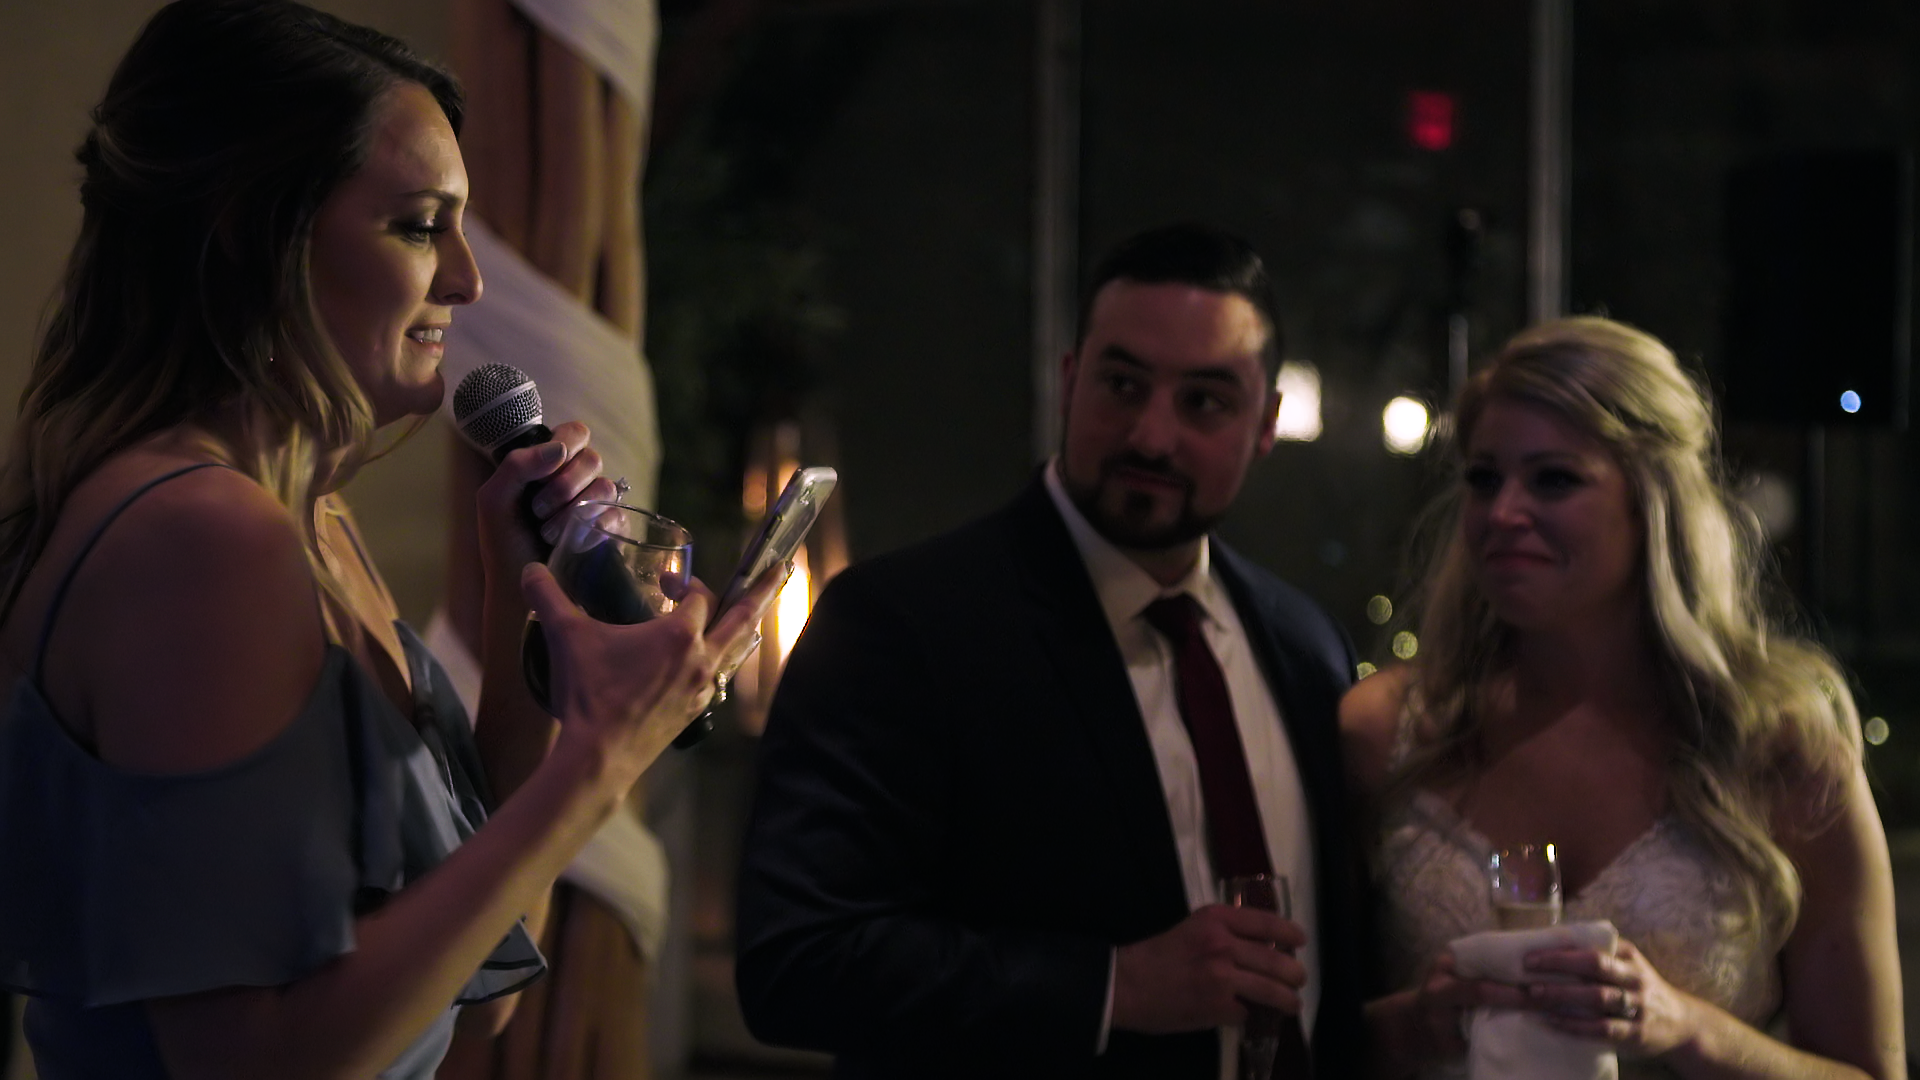 Barr_Mansion_Austin_Wedding_Videographer_New_Beginnings_Films_56.png